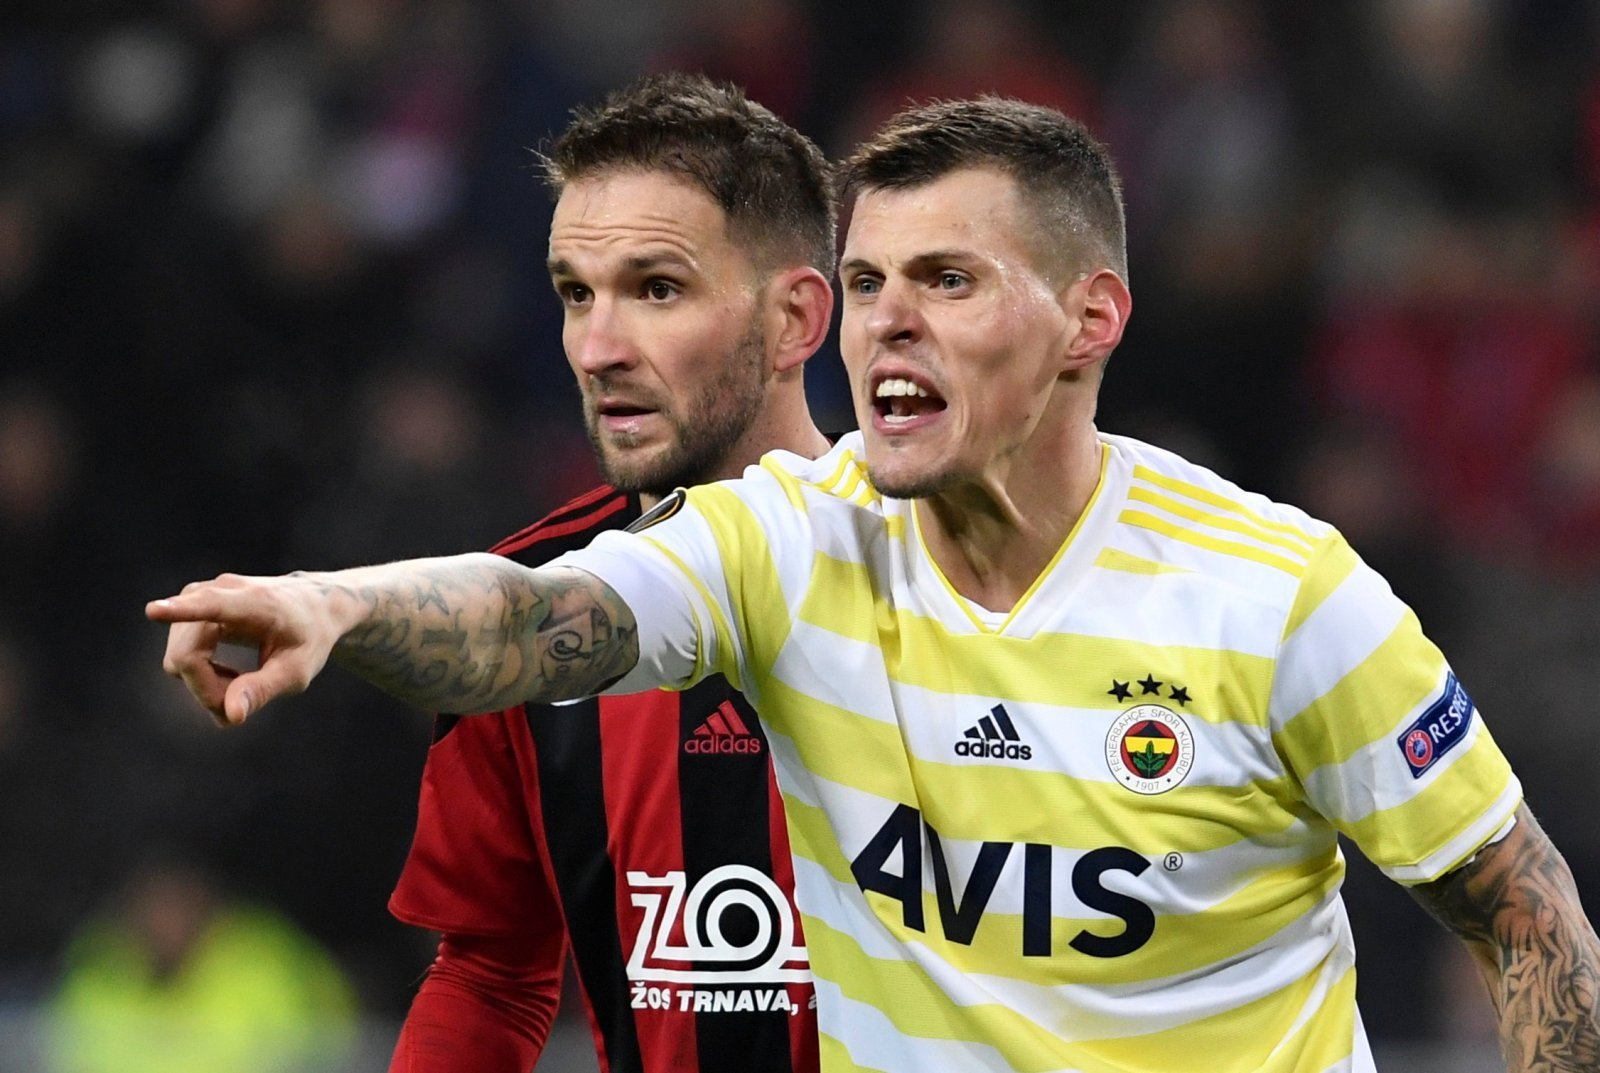 Rangers: Martin Skrtel confirms he has had talks about a possible switch